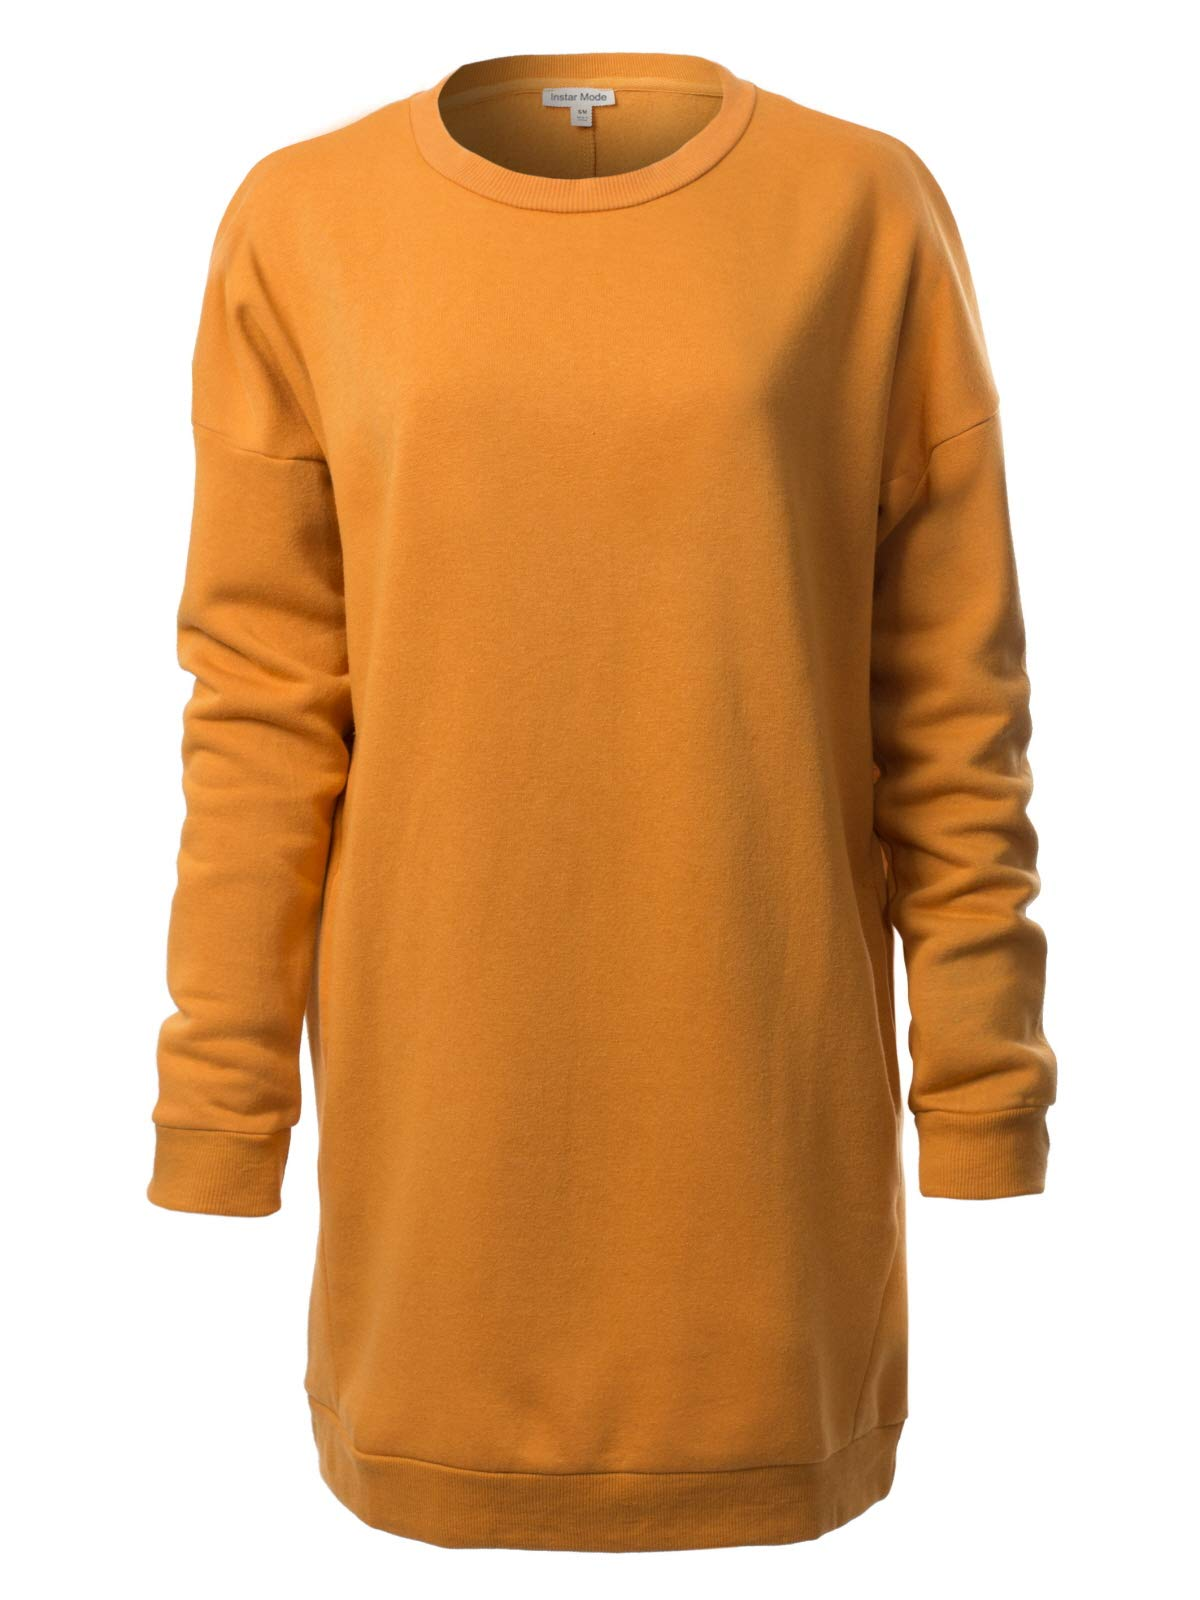 Instar Mode Women's Casual Loose Fit Round Neck Long Sleeves Over-Sized Tunic Sweatshirts Mustard ML